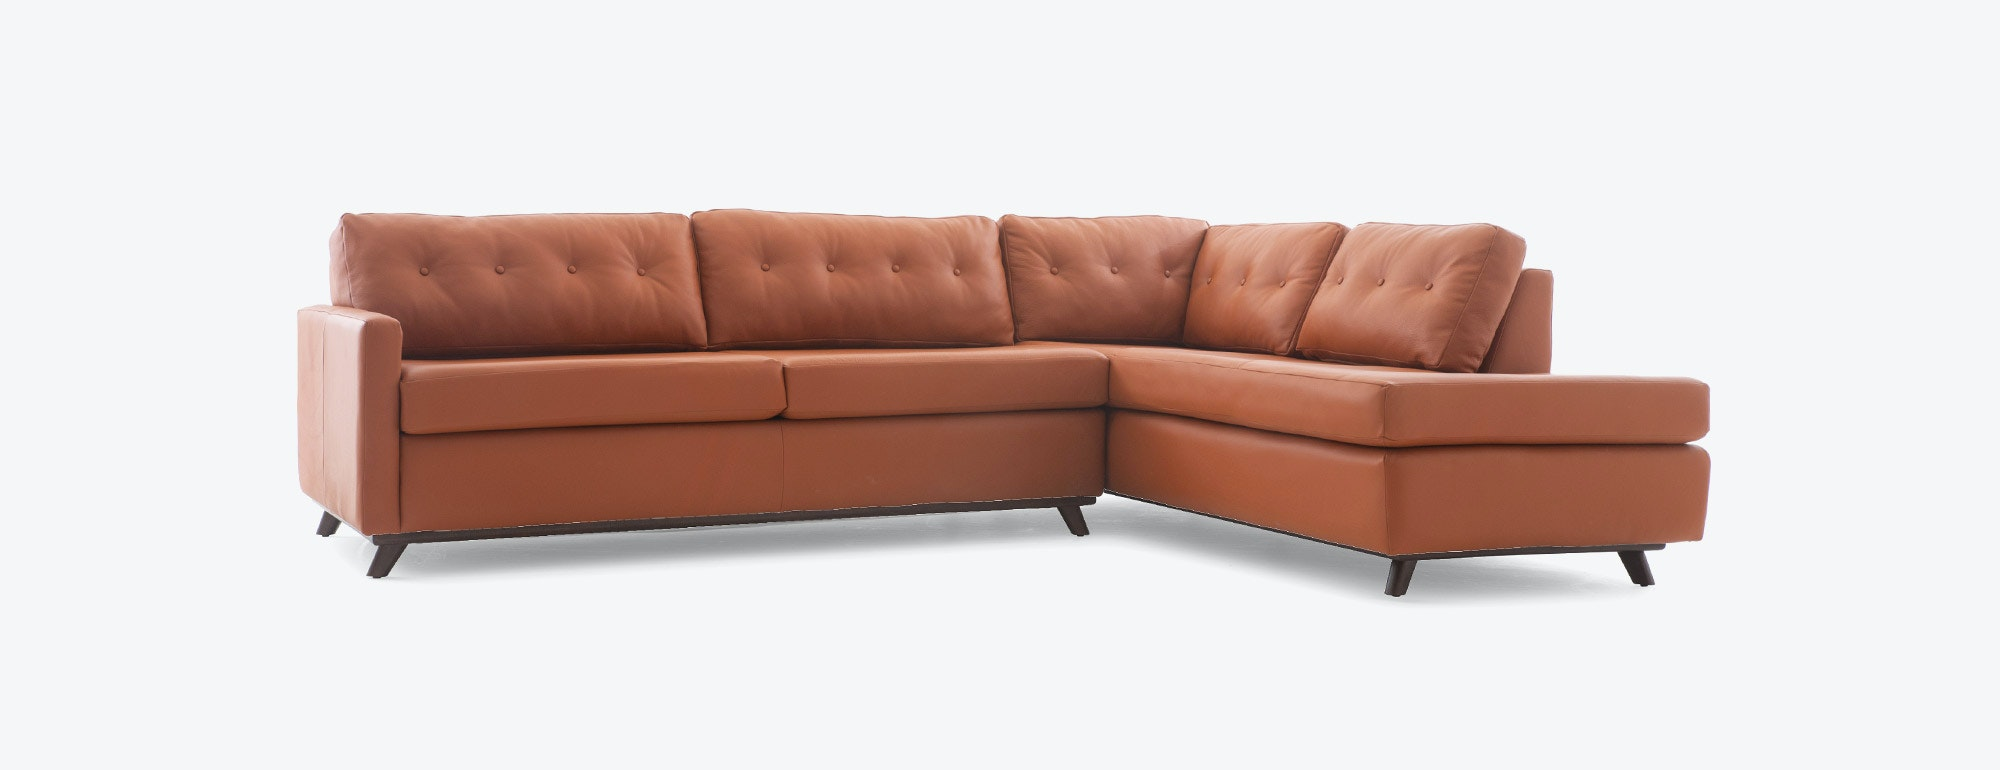 Hopson Leather Bumper Sleeper Sectional By Joybird